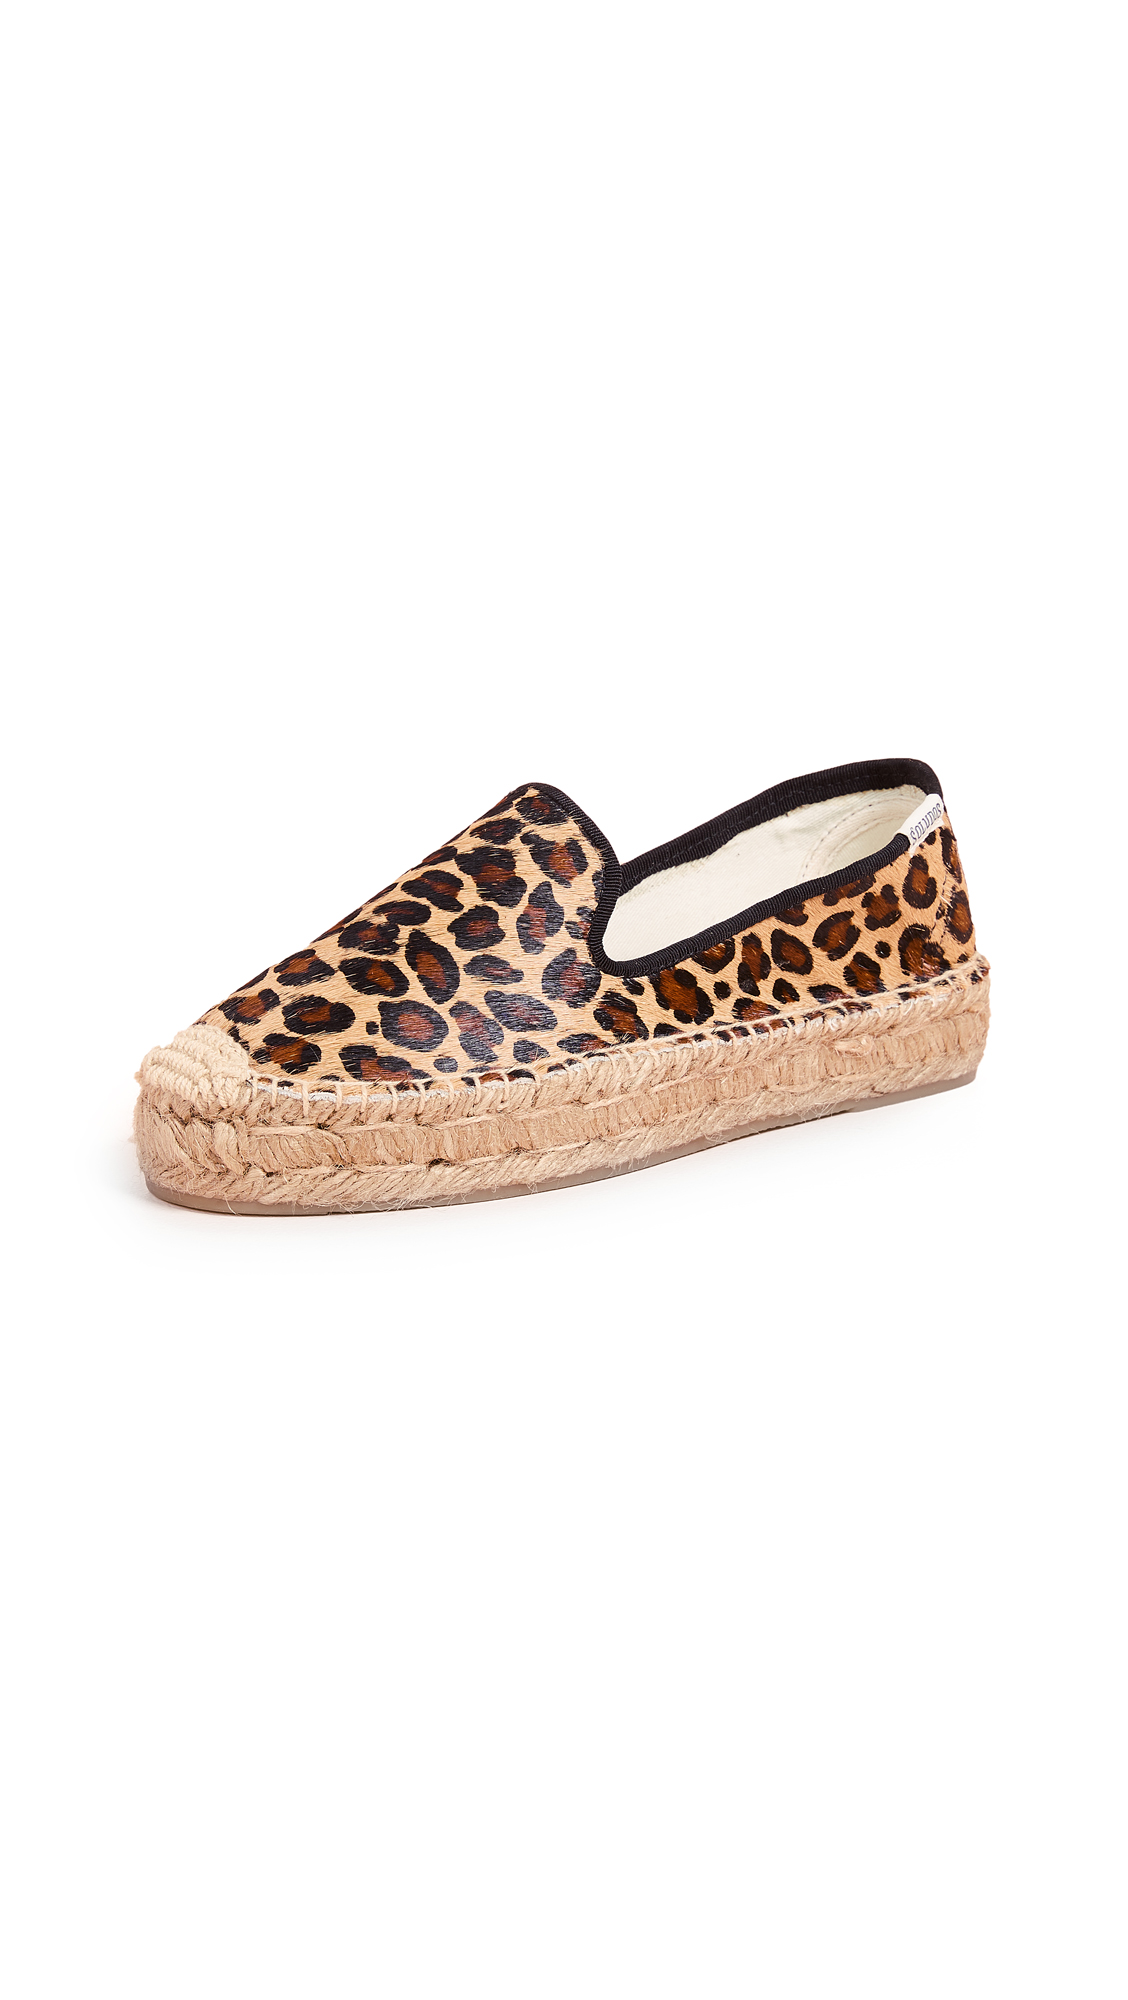 Soludos Haircalf Platform Smoking Slippers - Leopard